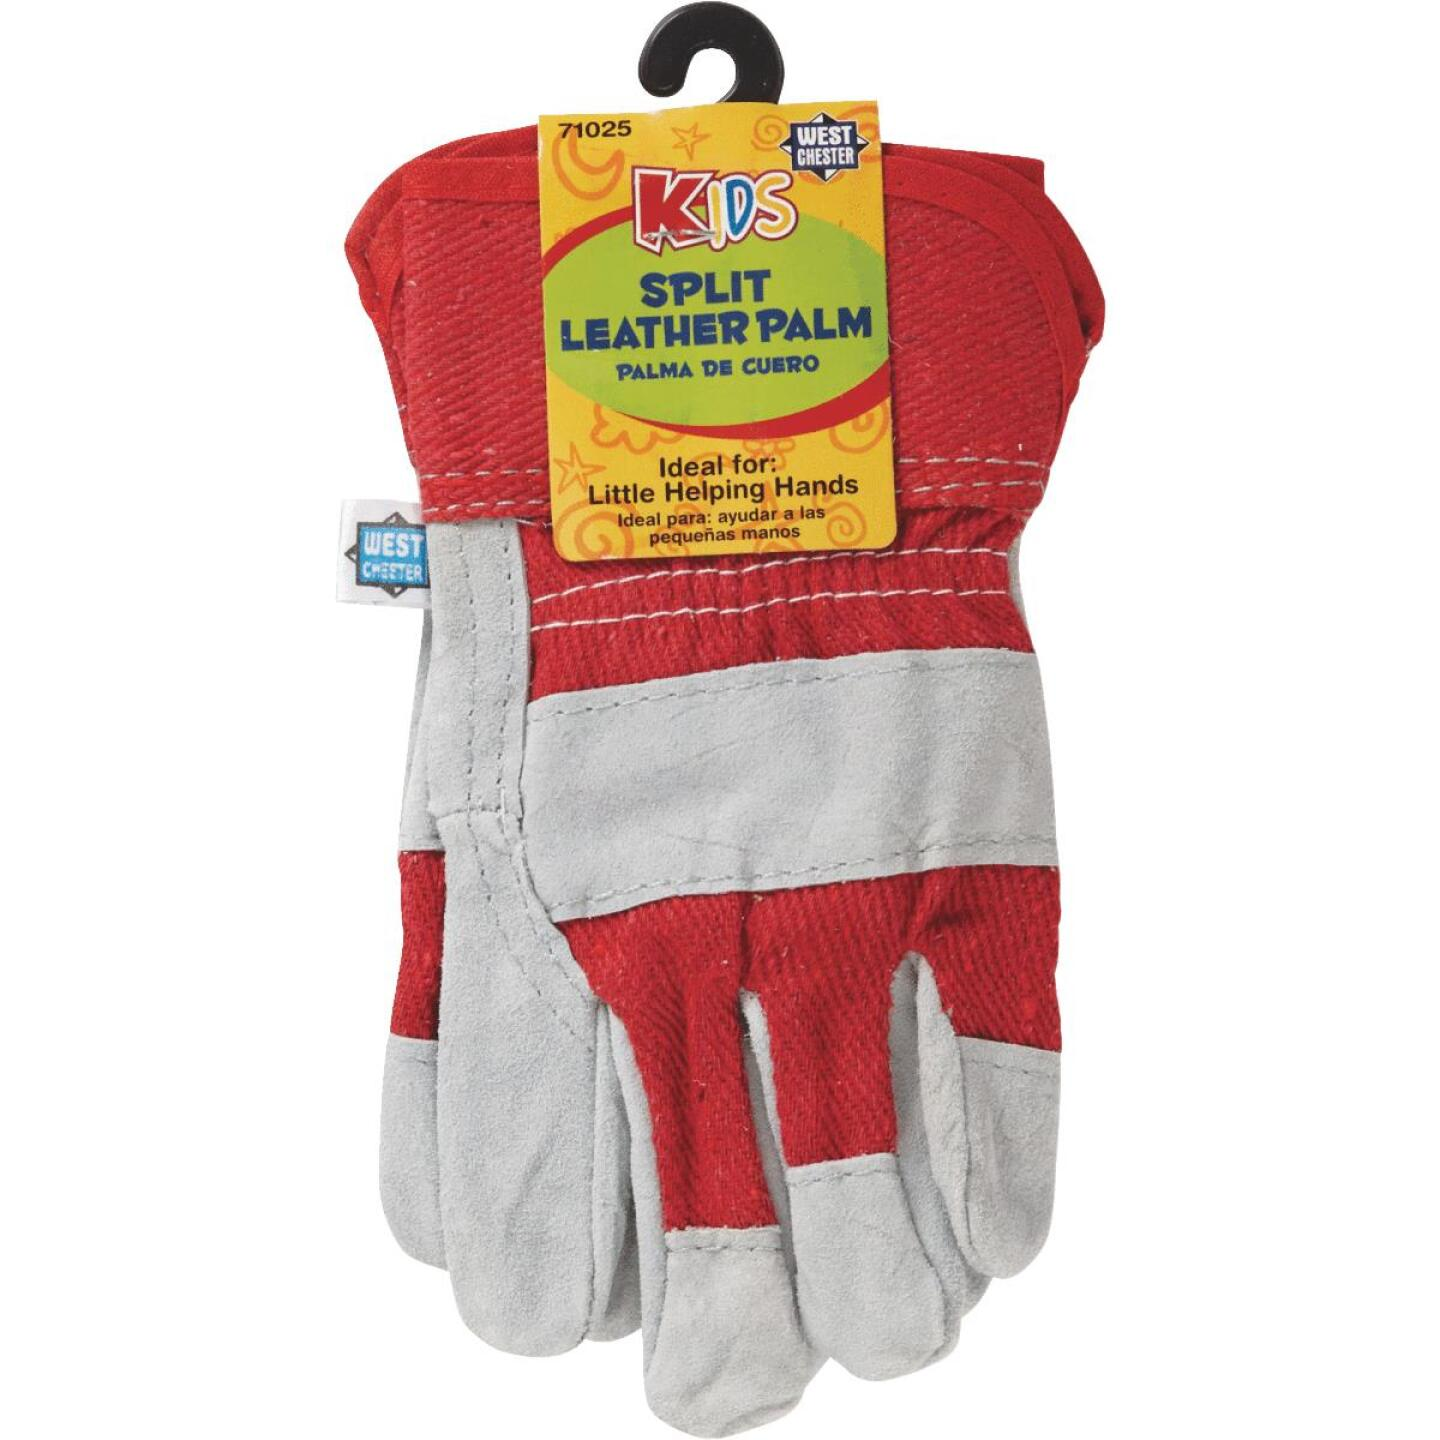 West Chester Protective Gear Age 5 to 8 Leather Glove Image 2